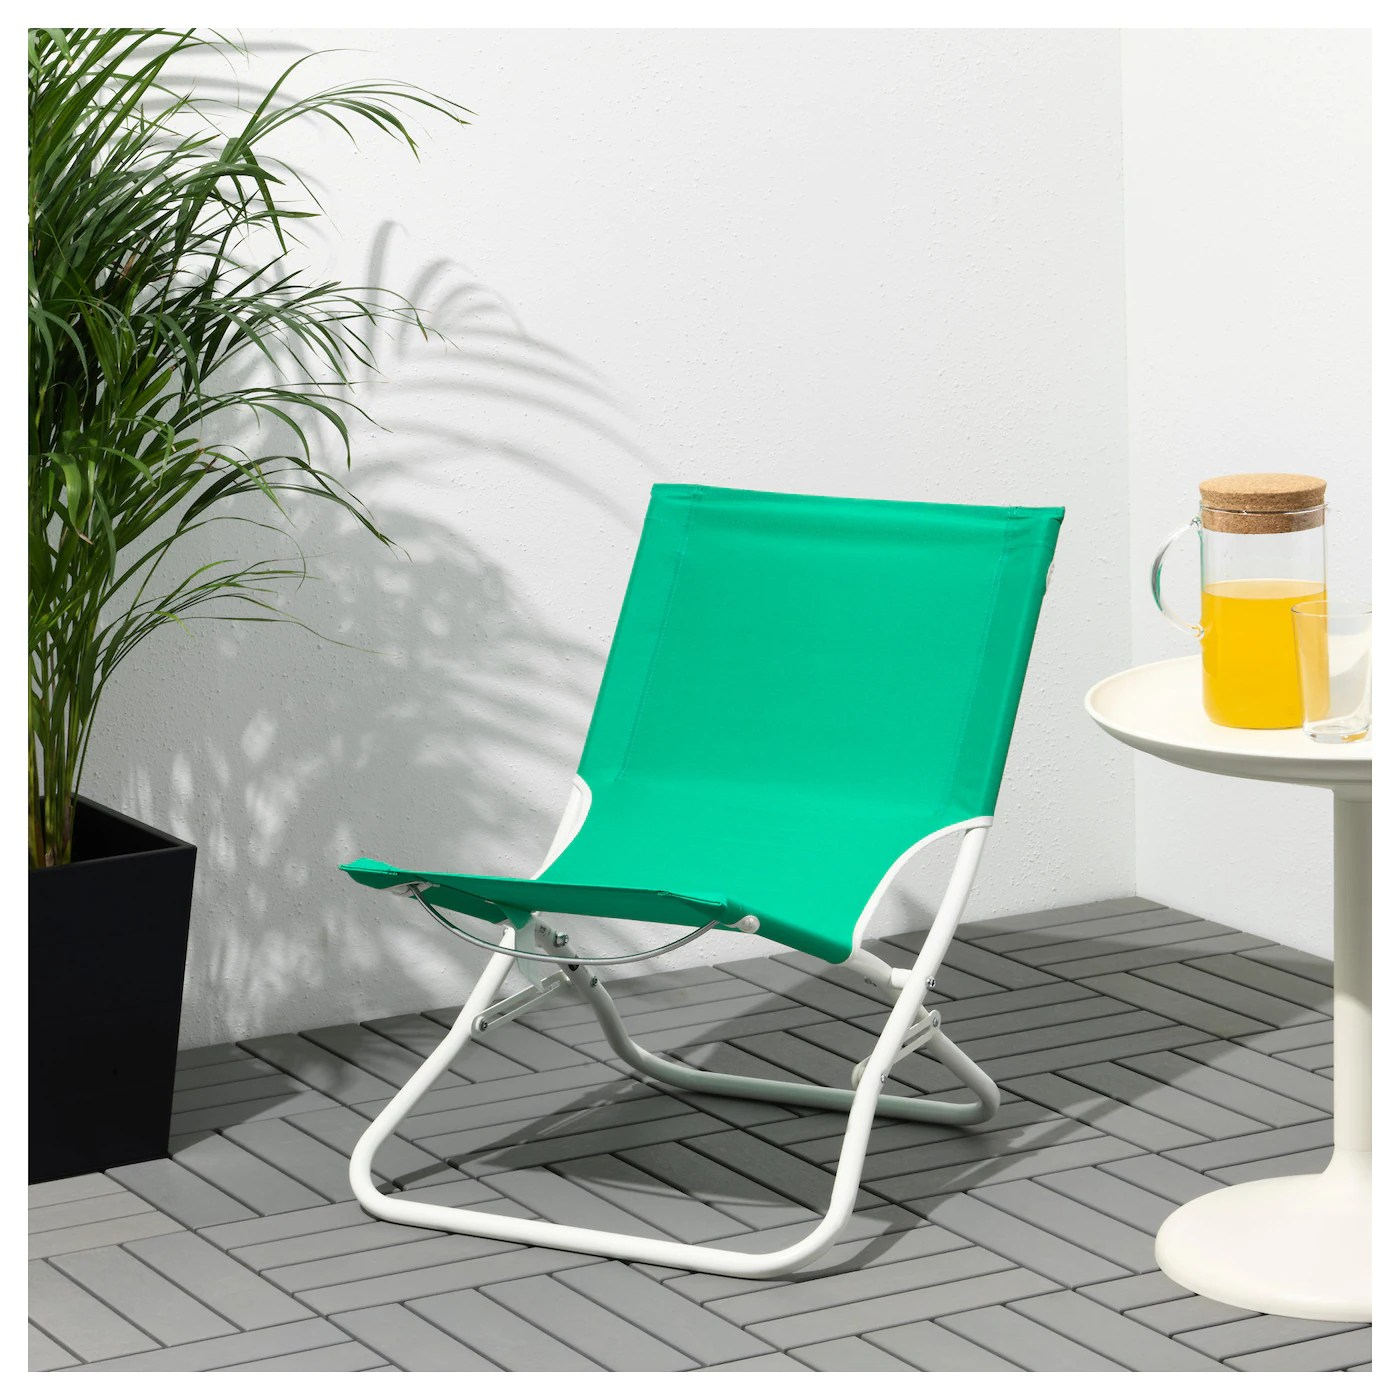 ikea beach chair patio stacking chairs canada hÅmÖ green